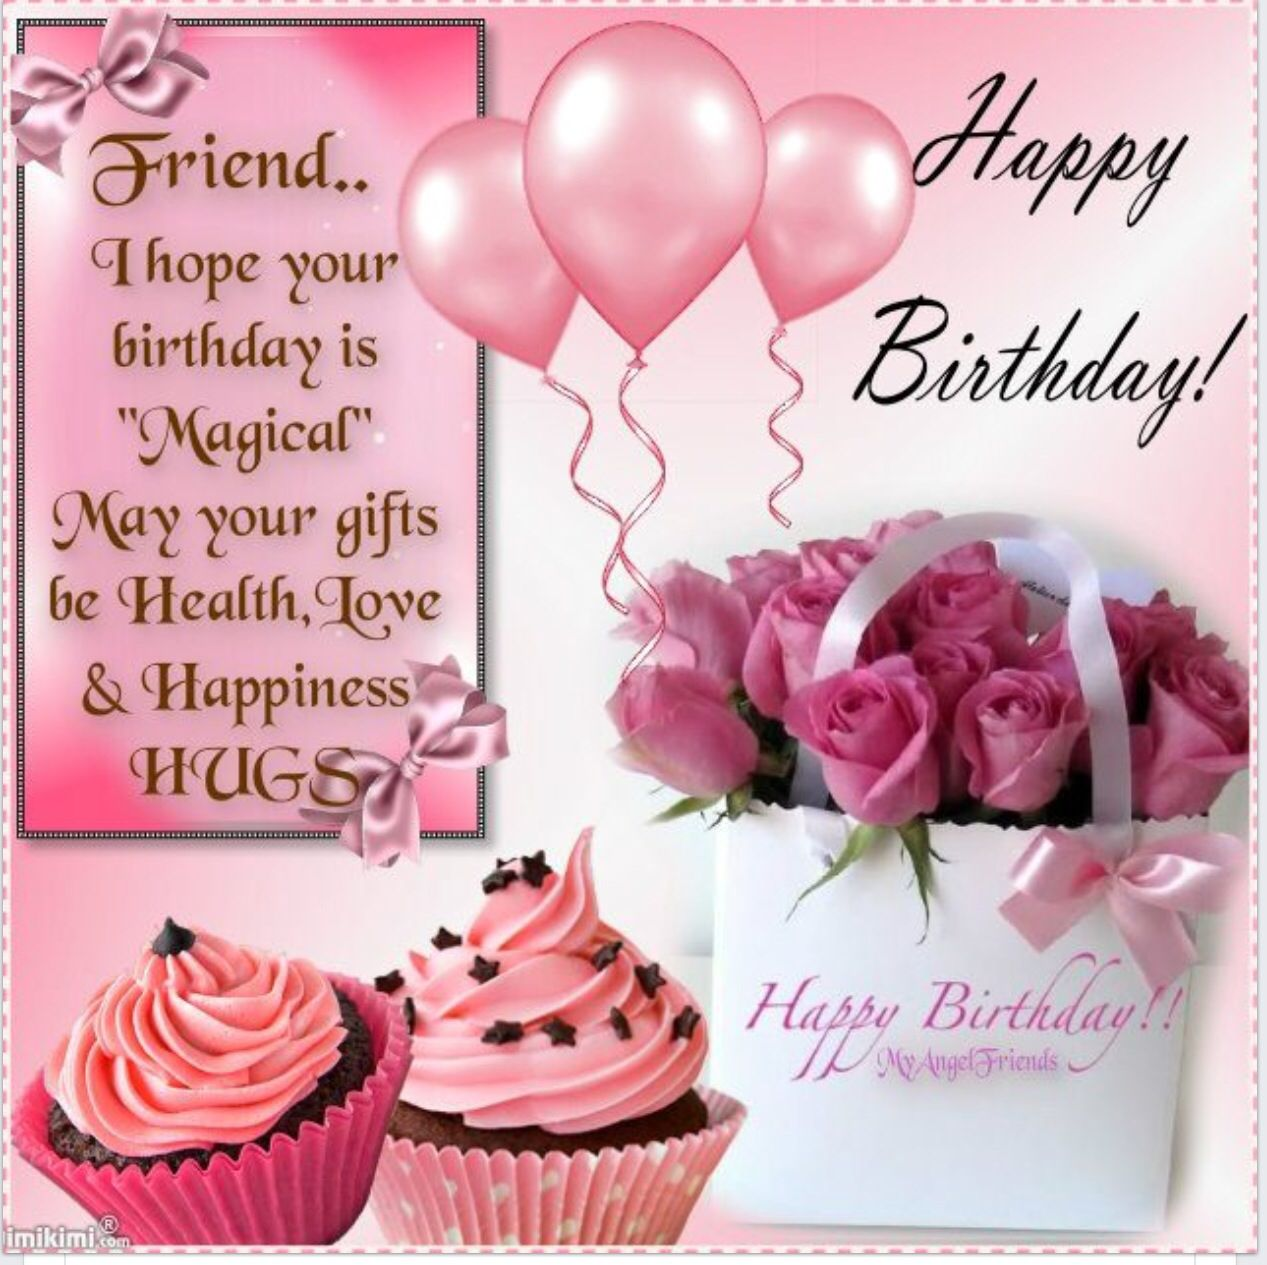 Pin by Patricia Lee on Birthday Greetings Happy birthday